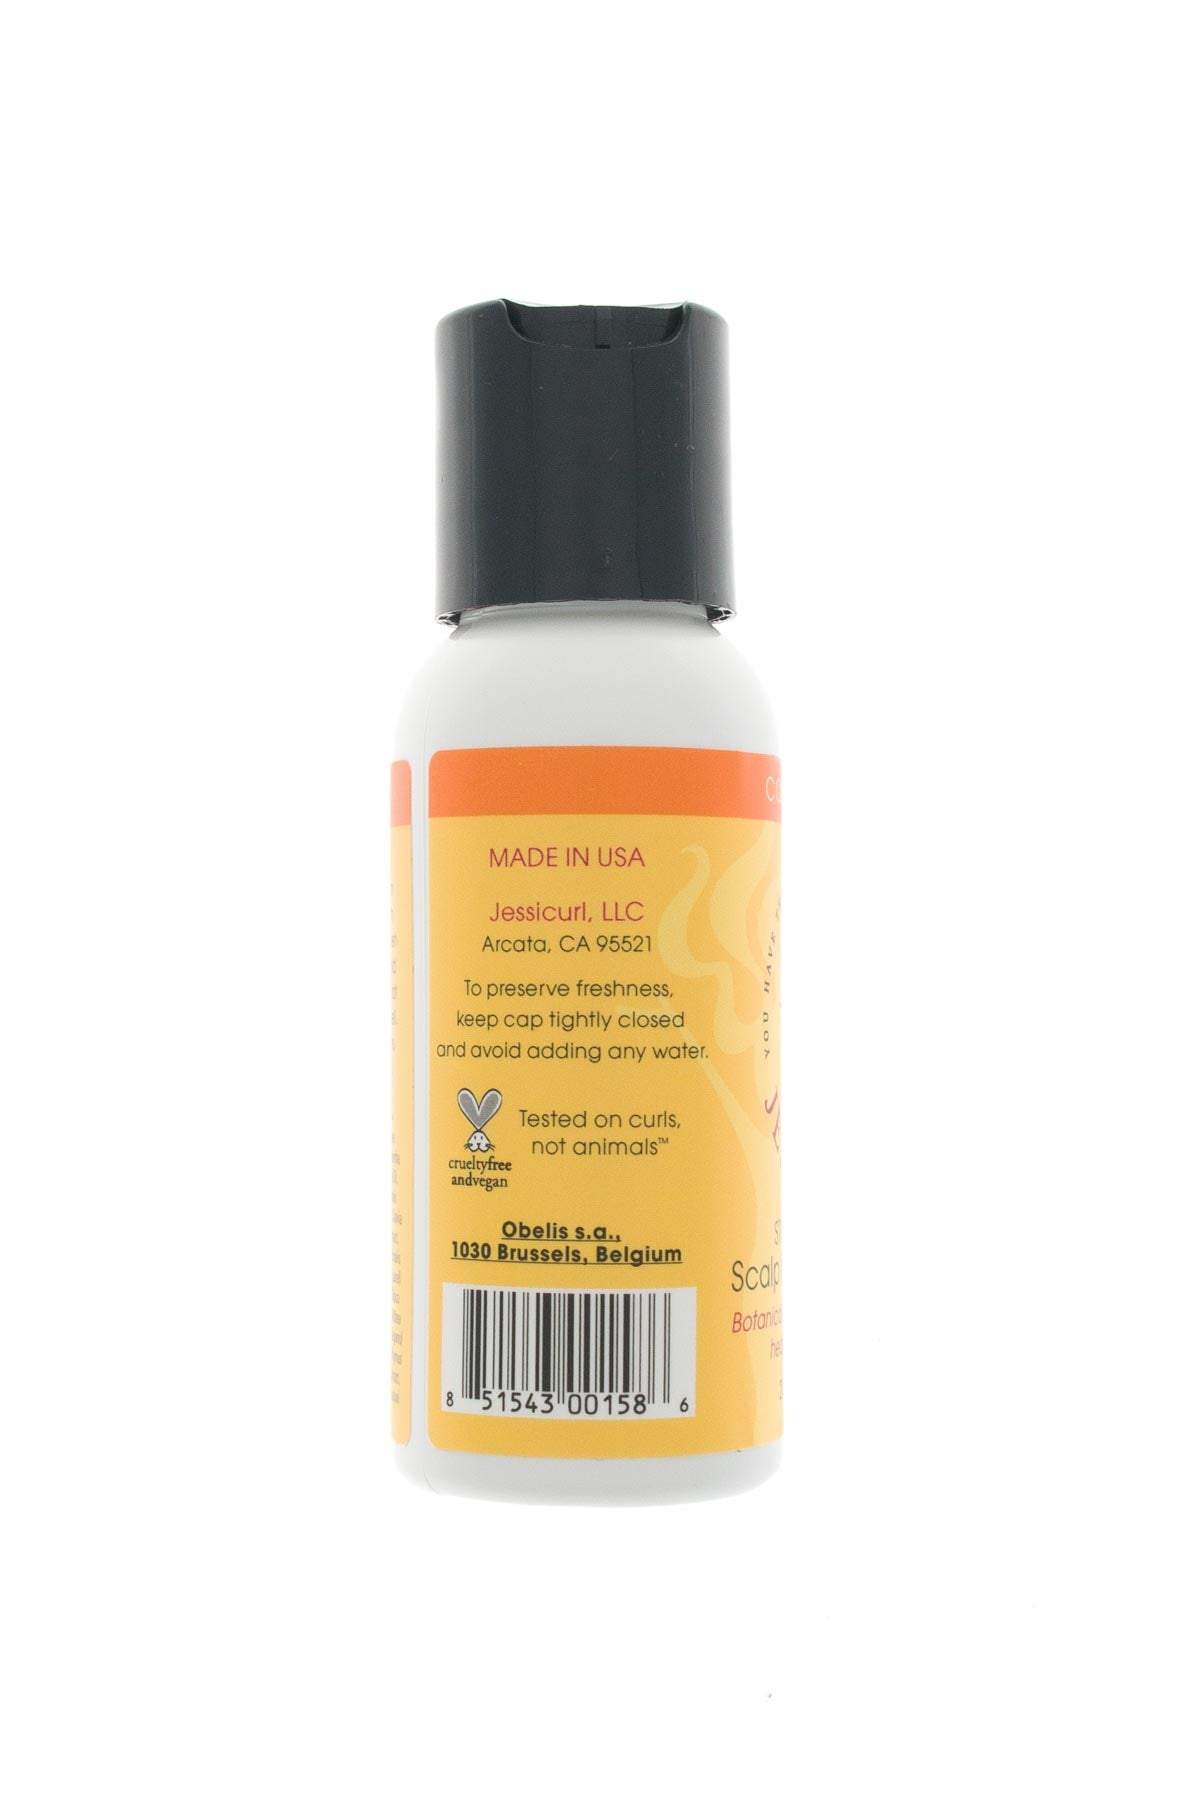 Curly Hair Oil Massage Oil - Jessicurl